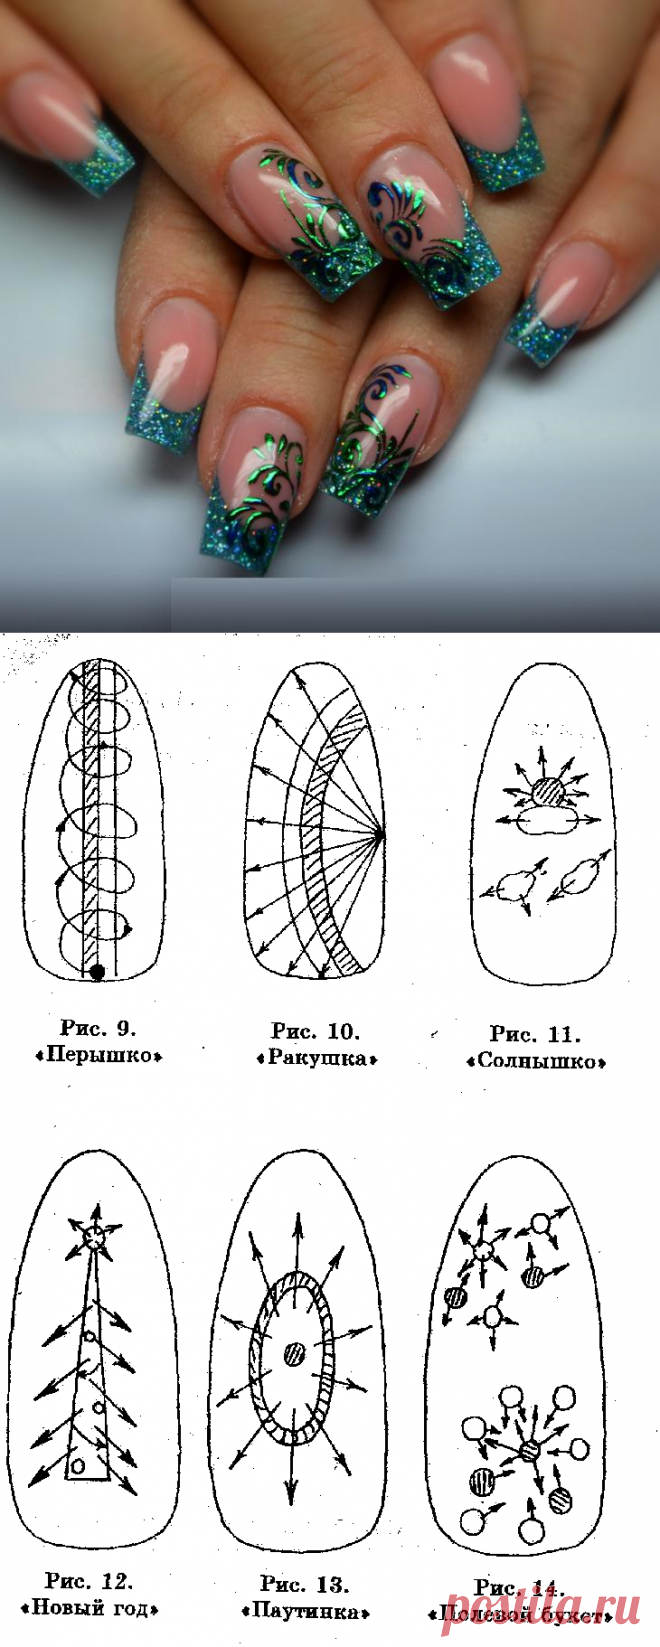 How to draw simple beautiful patterns on nails